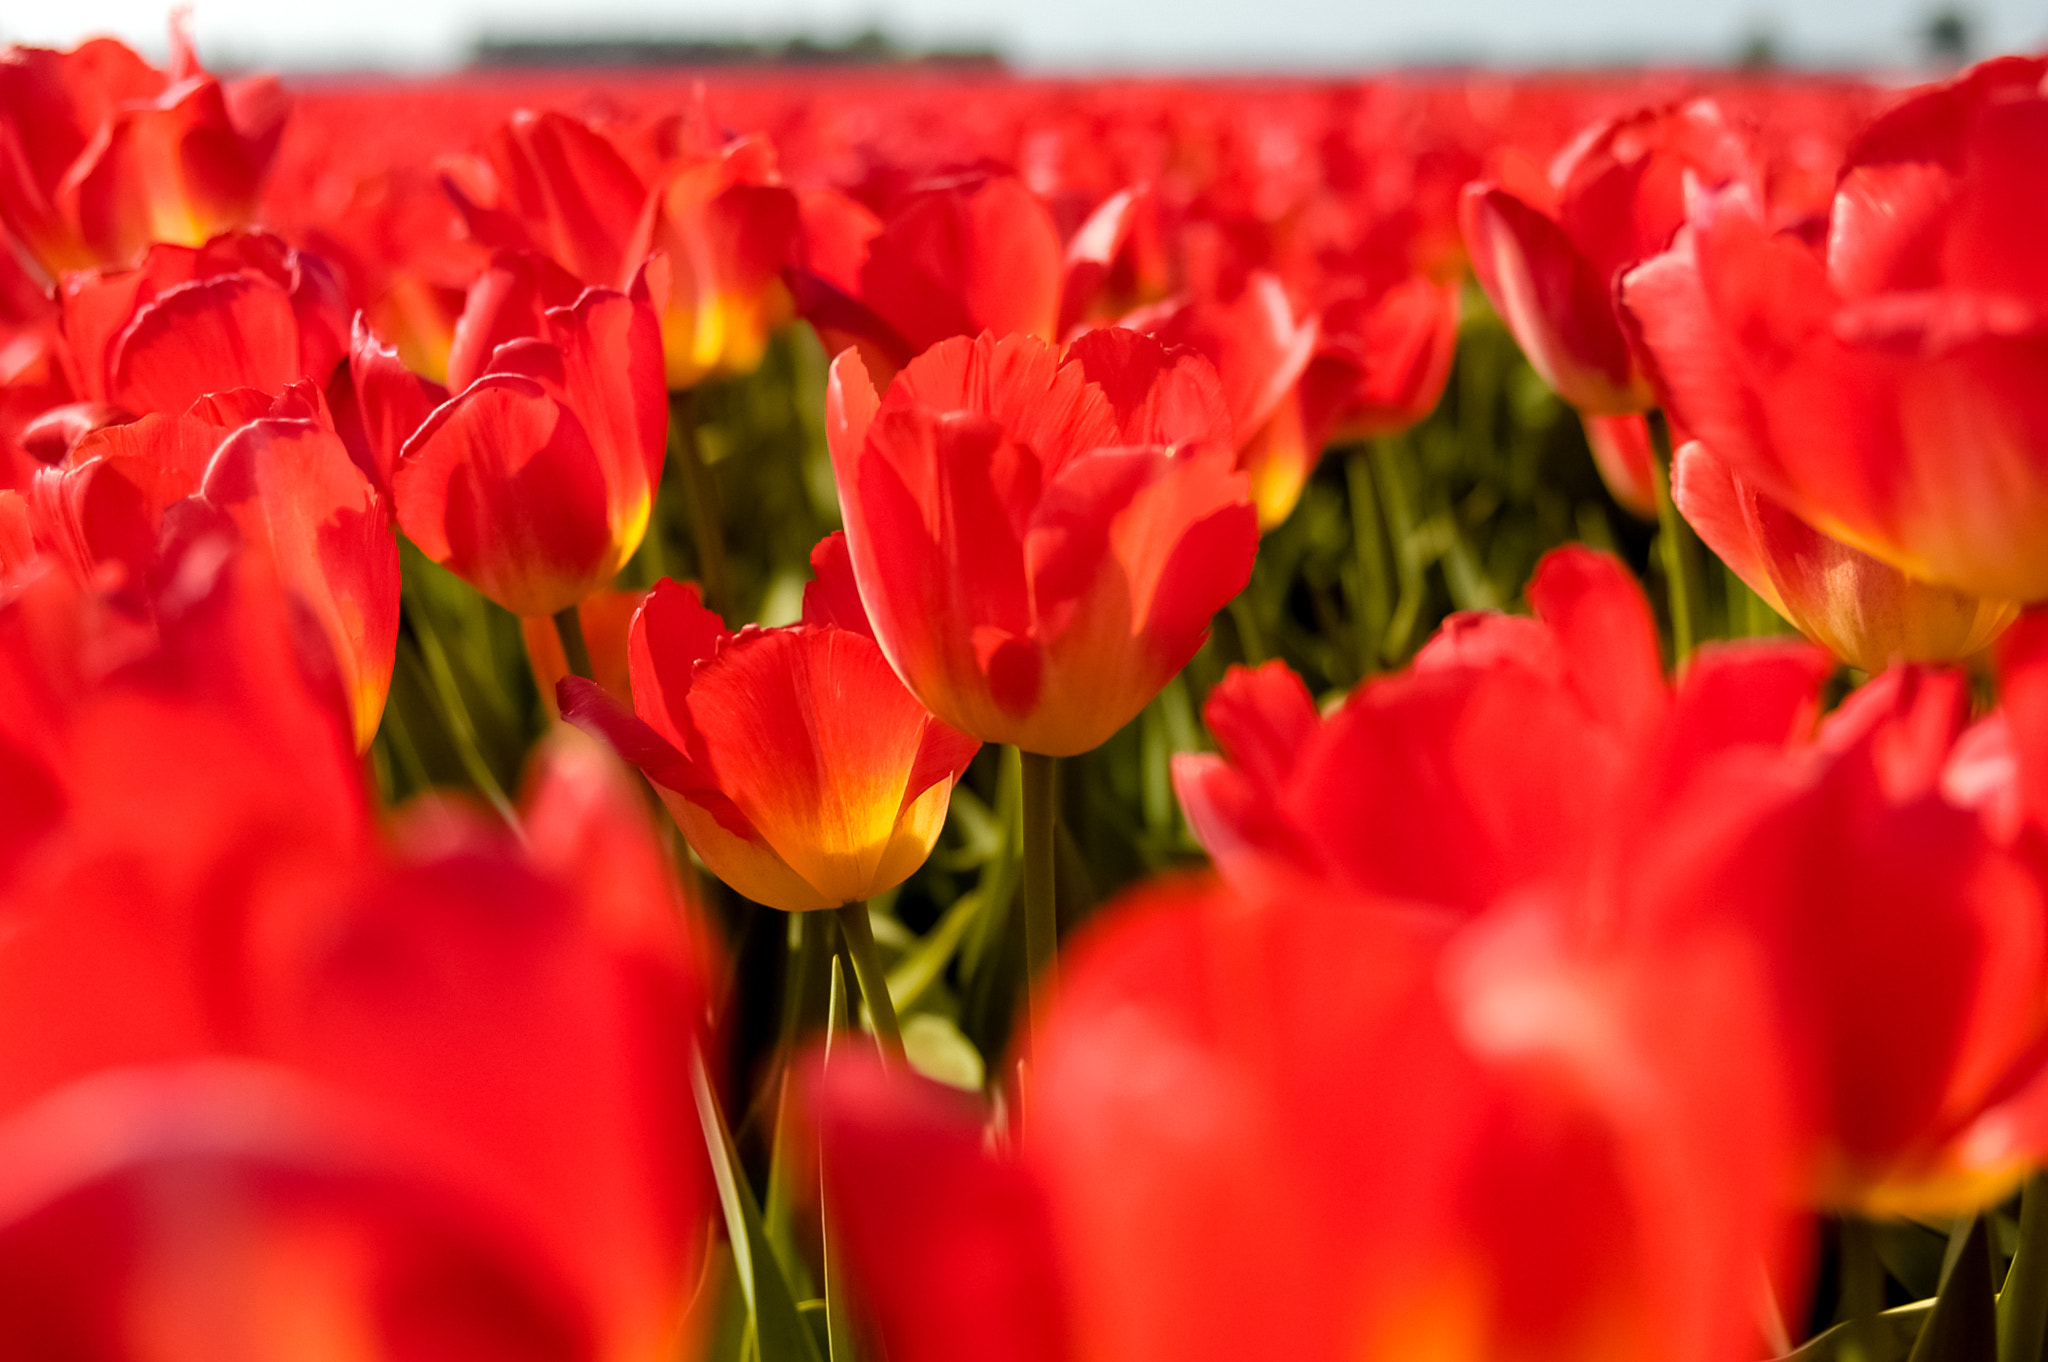 Photograph Dutch Tulips! by Arash Khamooshian on 500px